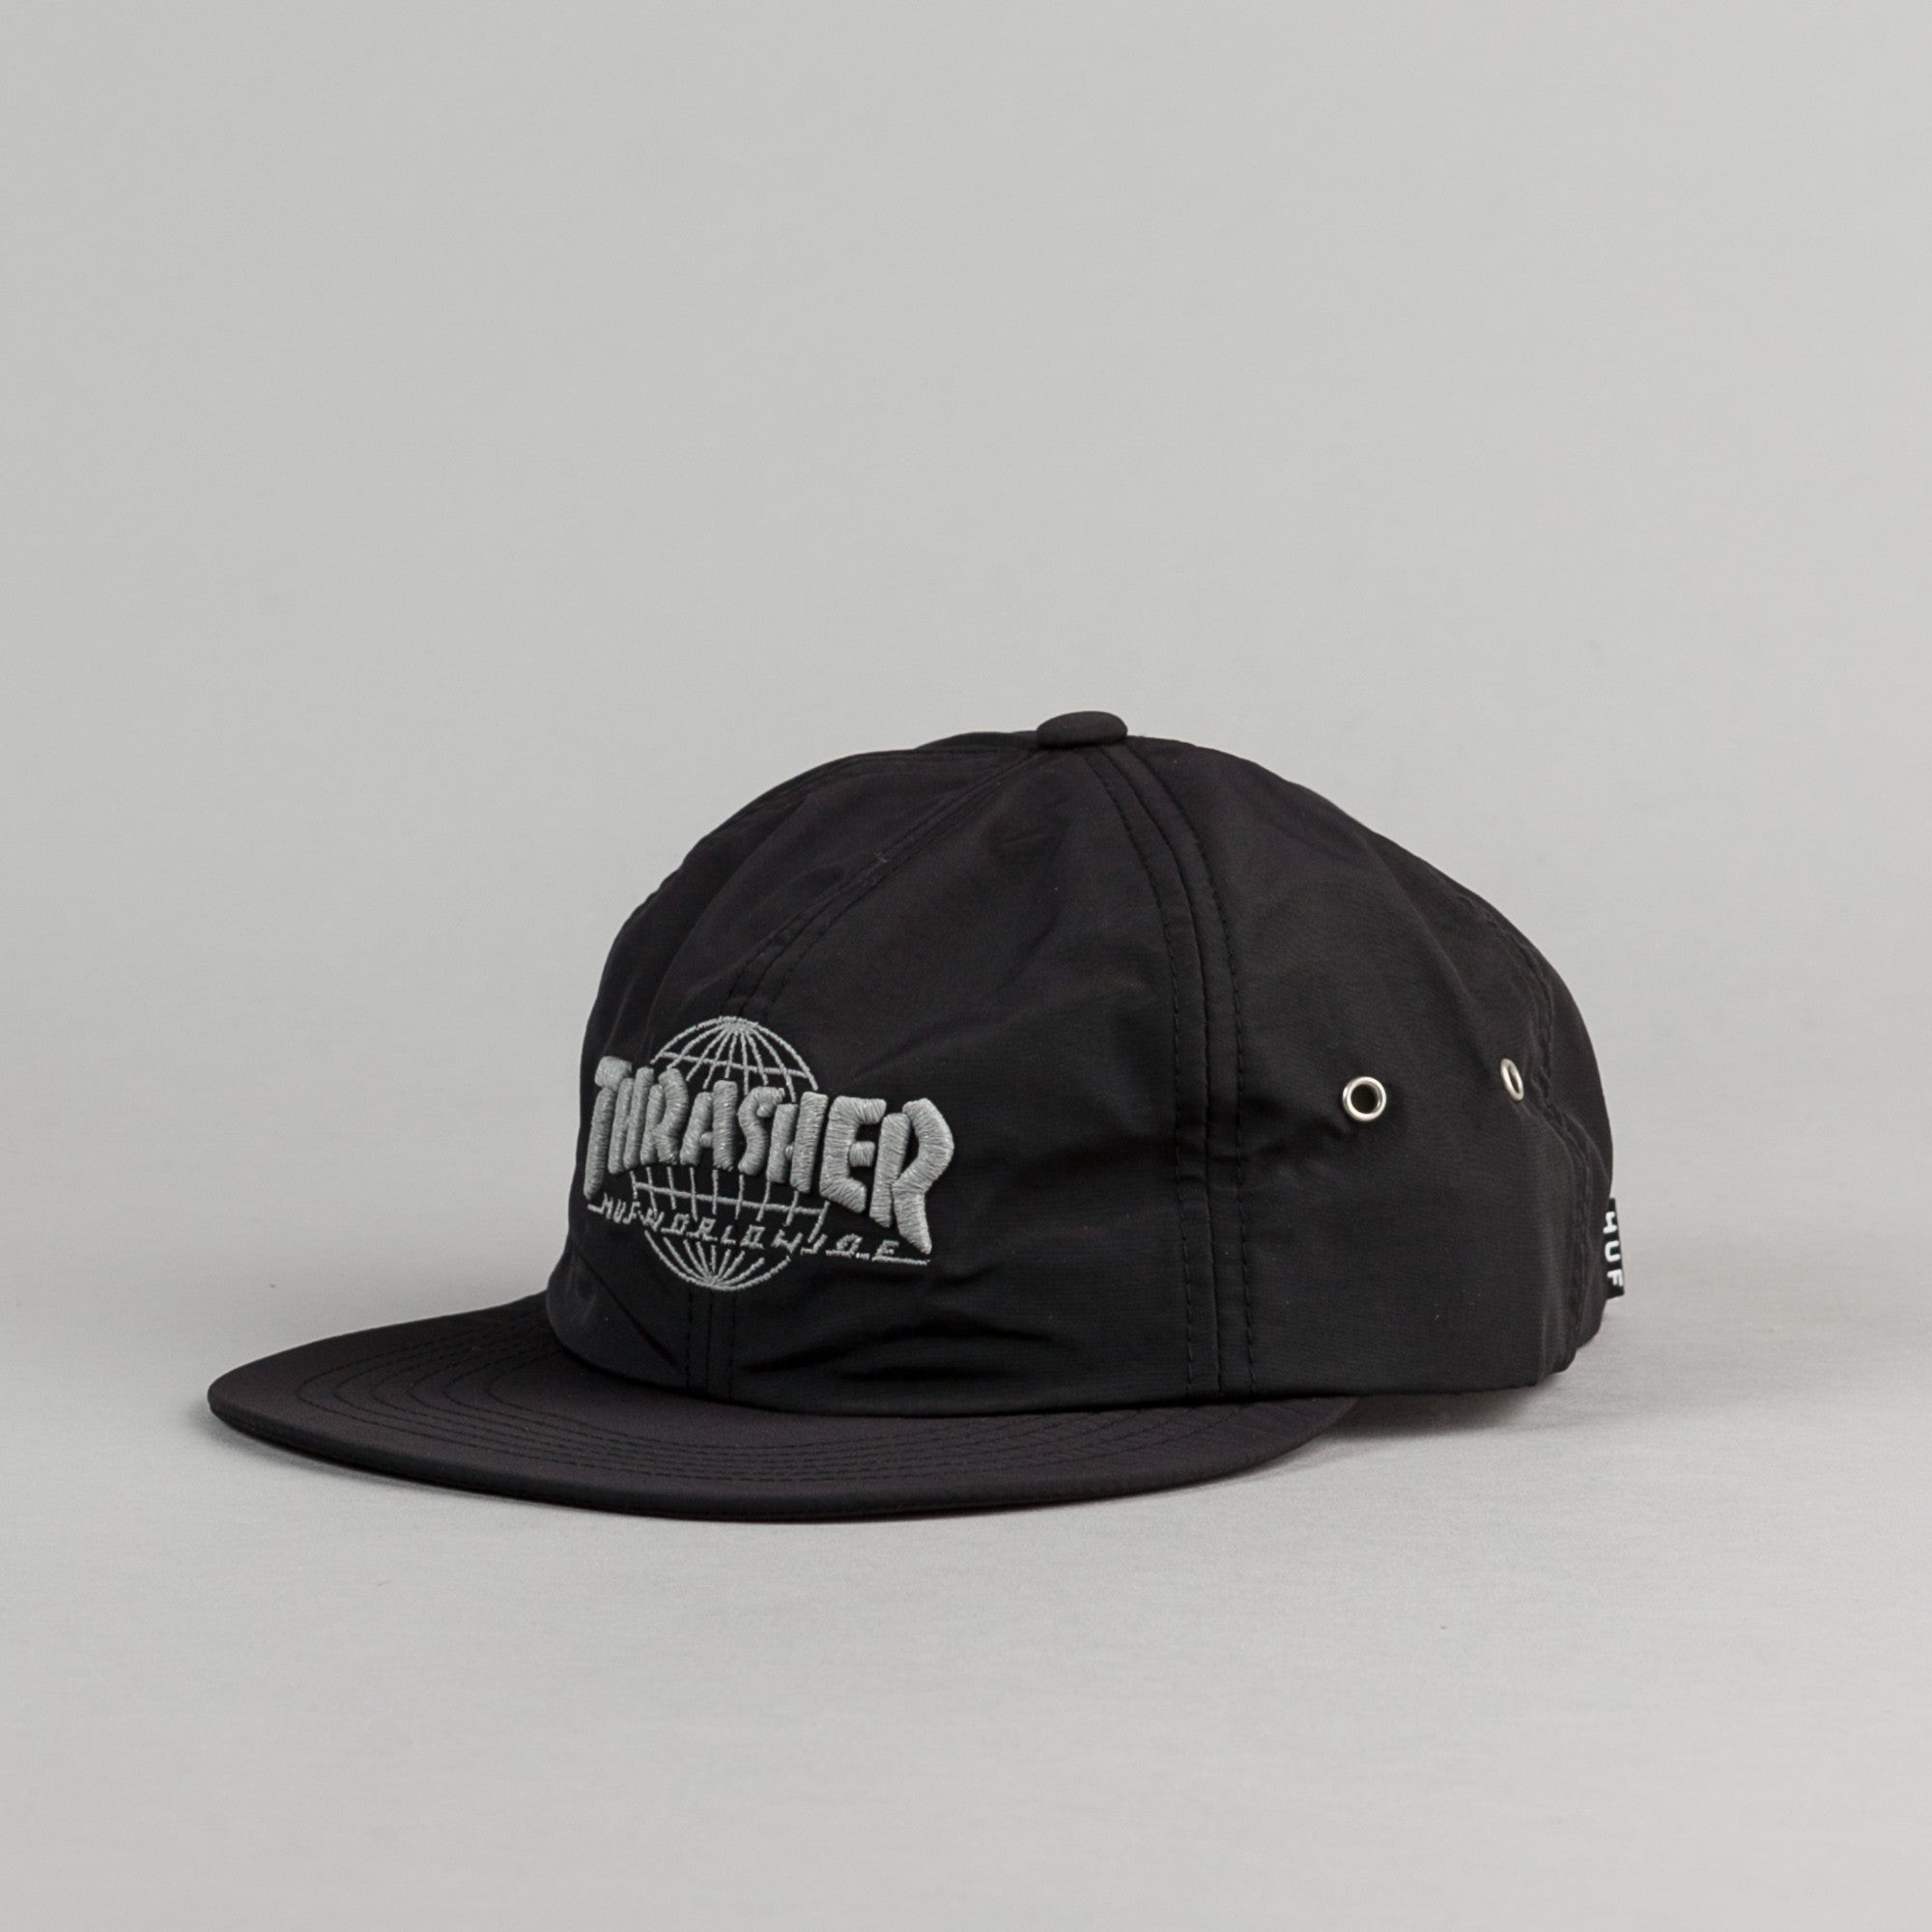 5bbc2bf5588 HUF x Thrasher TDS 6 Panel Cap - Black